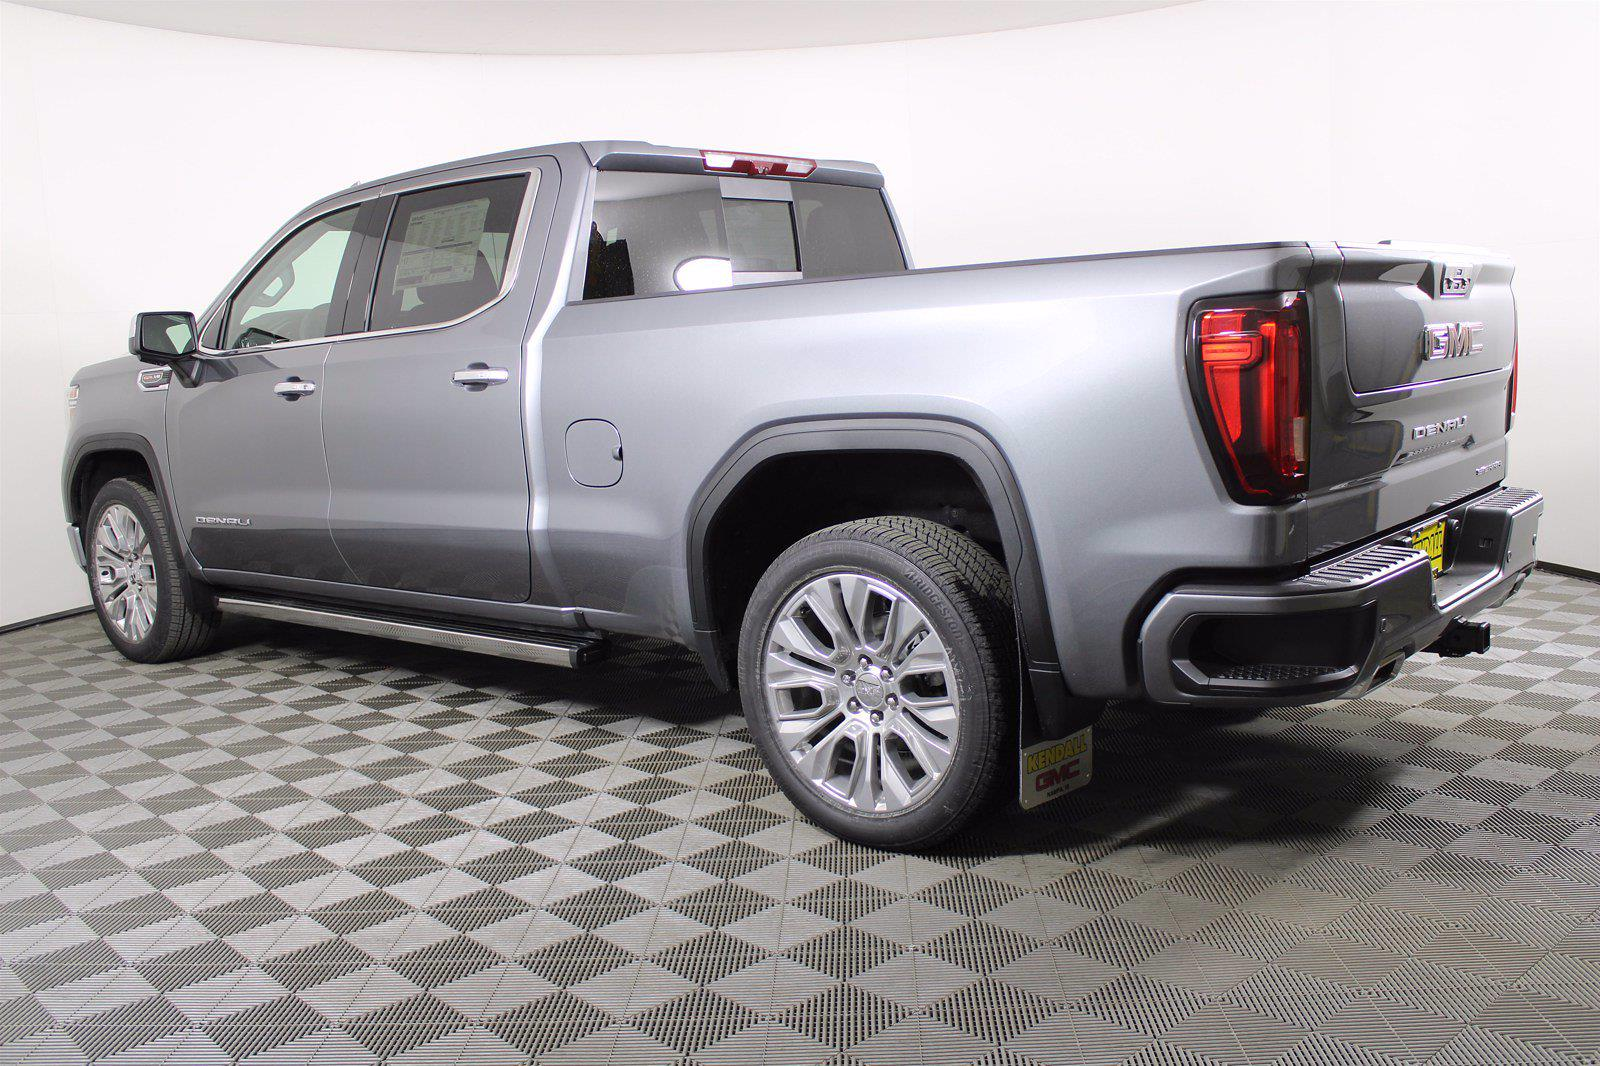 2021 GMC Sierra 1500 Crew Cab 4x4, Pickup #D410424 - photo 1